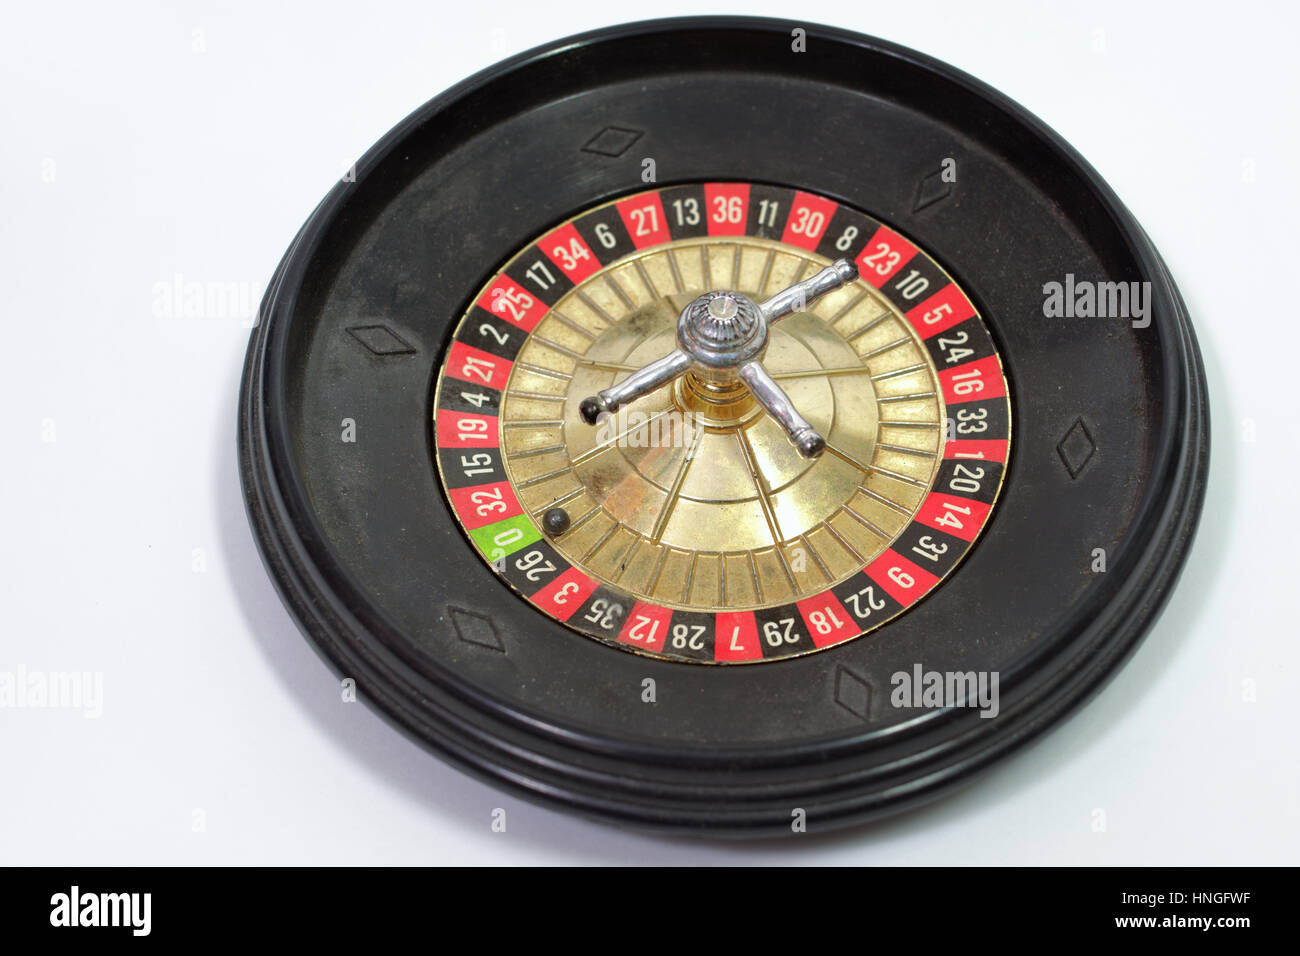 toy gambling table. Roulette fell zero - Stock Image